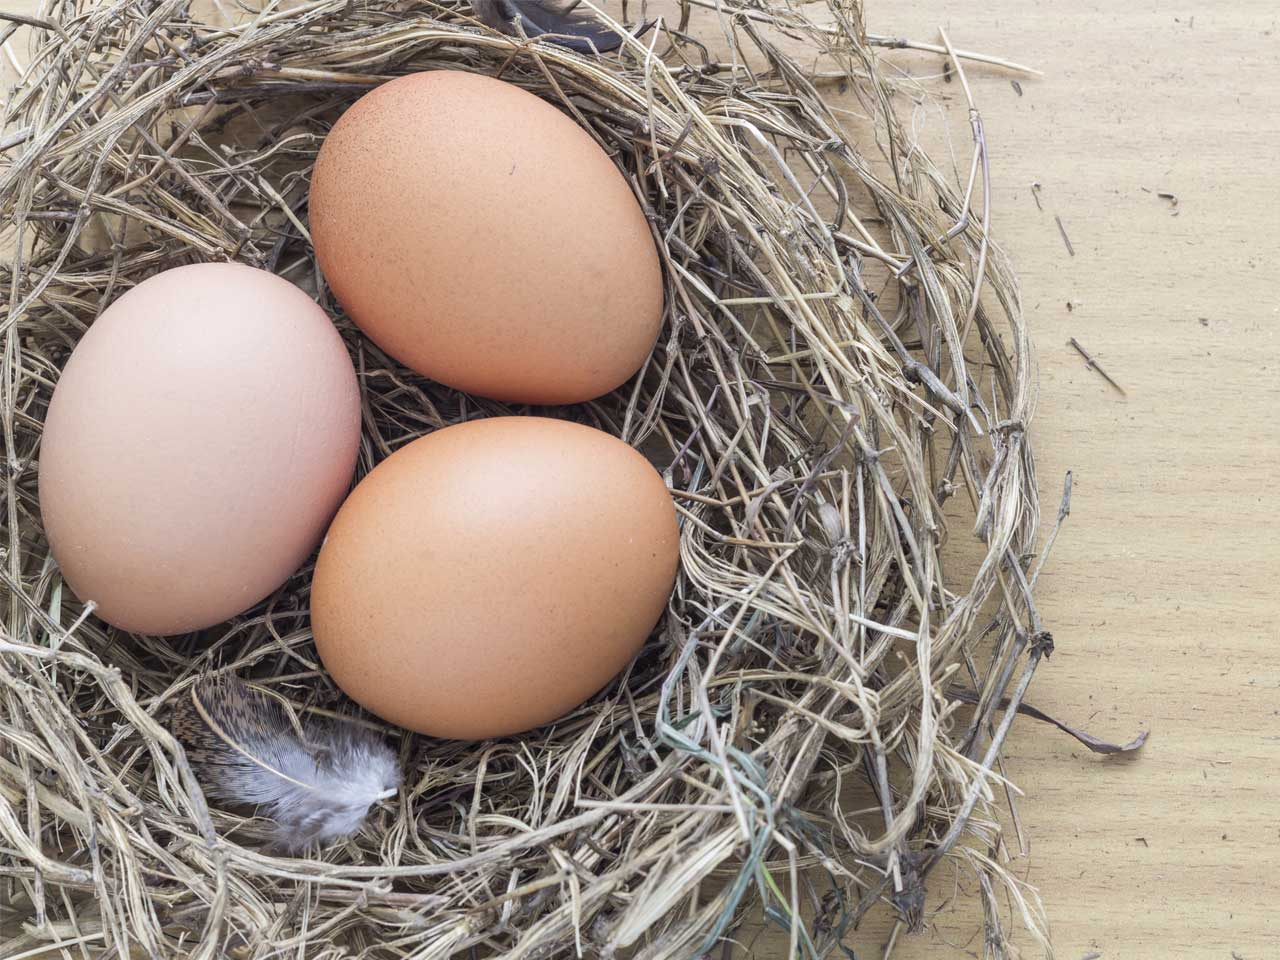 Eggs in a nest to represent a pension nest egg